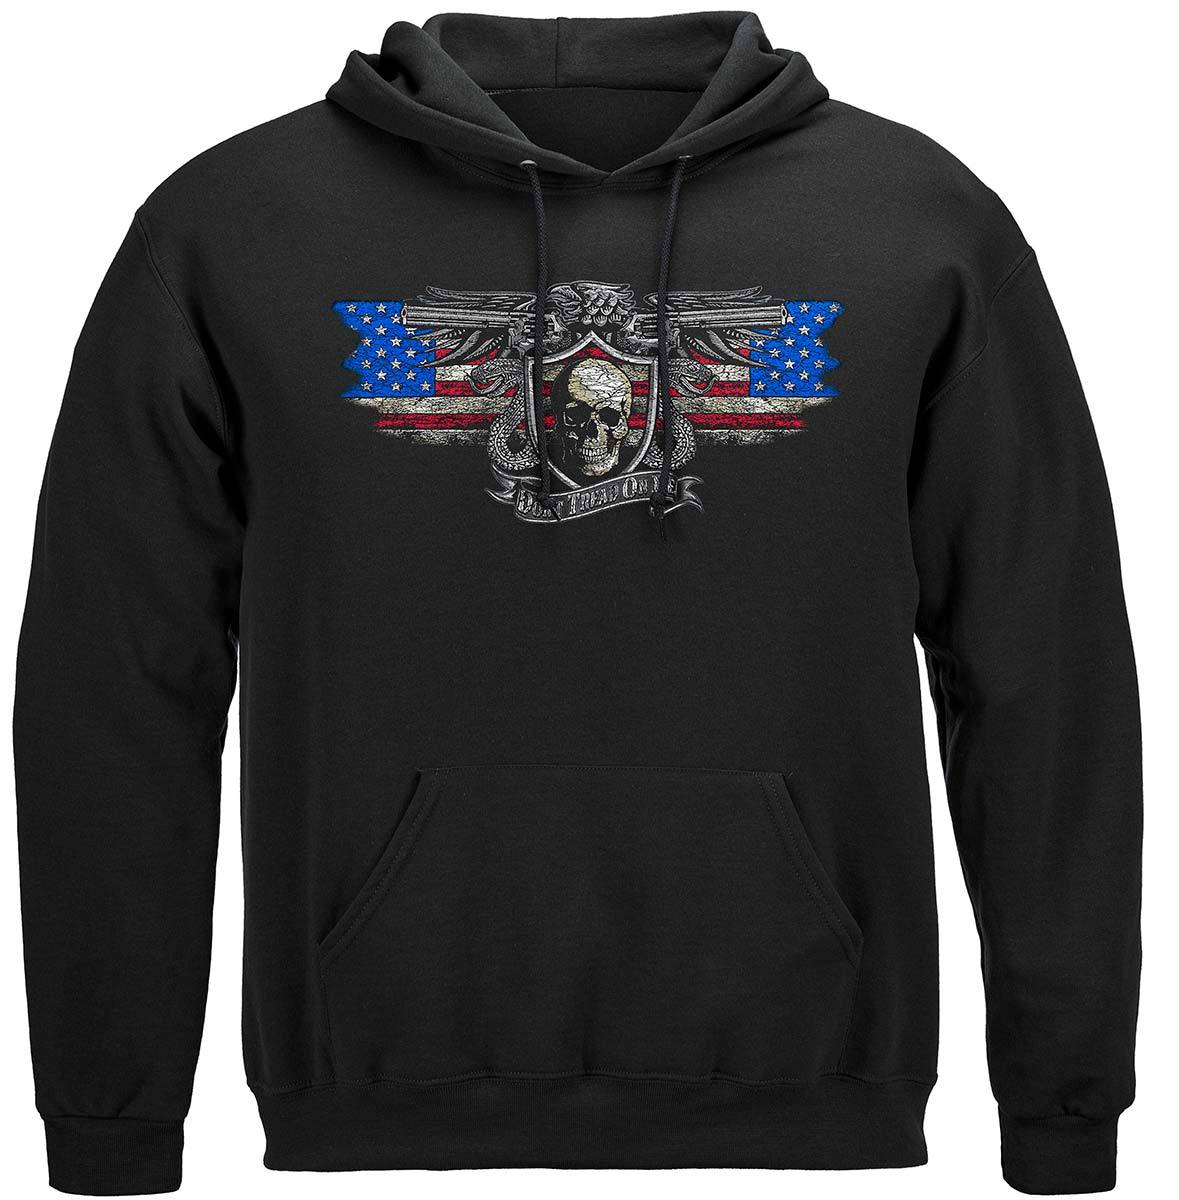 2nd Amendment Don't Tread On Me Silver Foil Premium Hooded Sweat Shirt